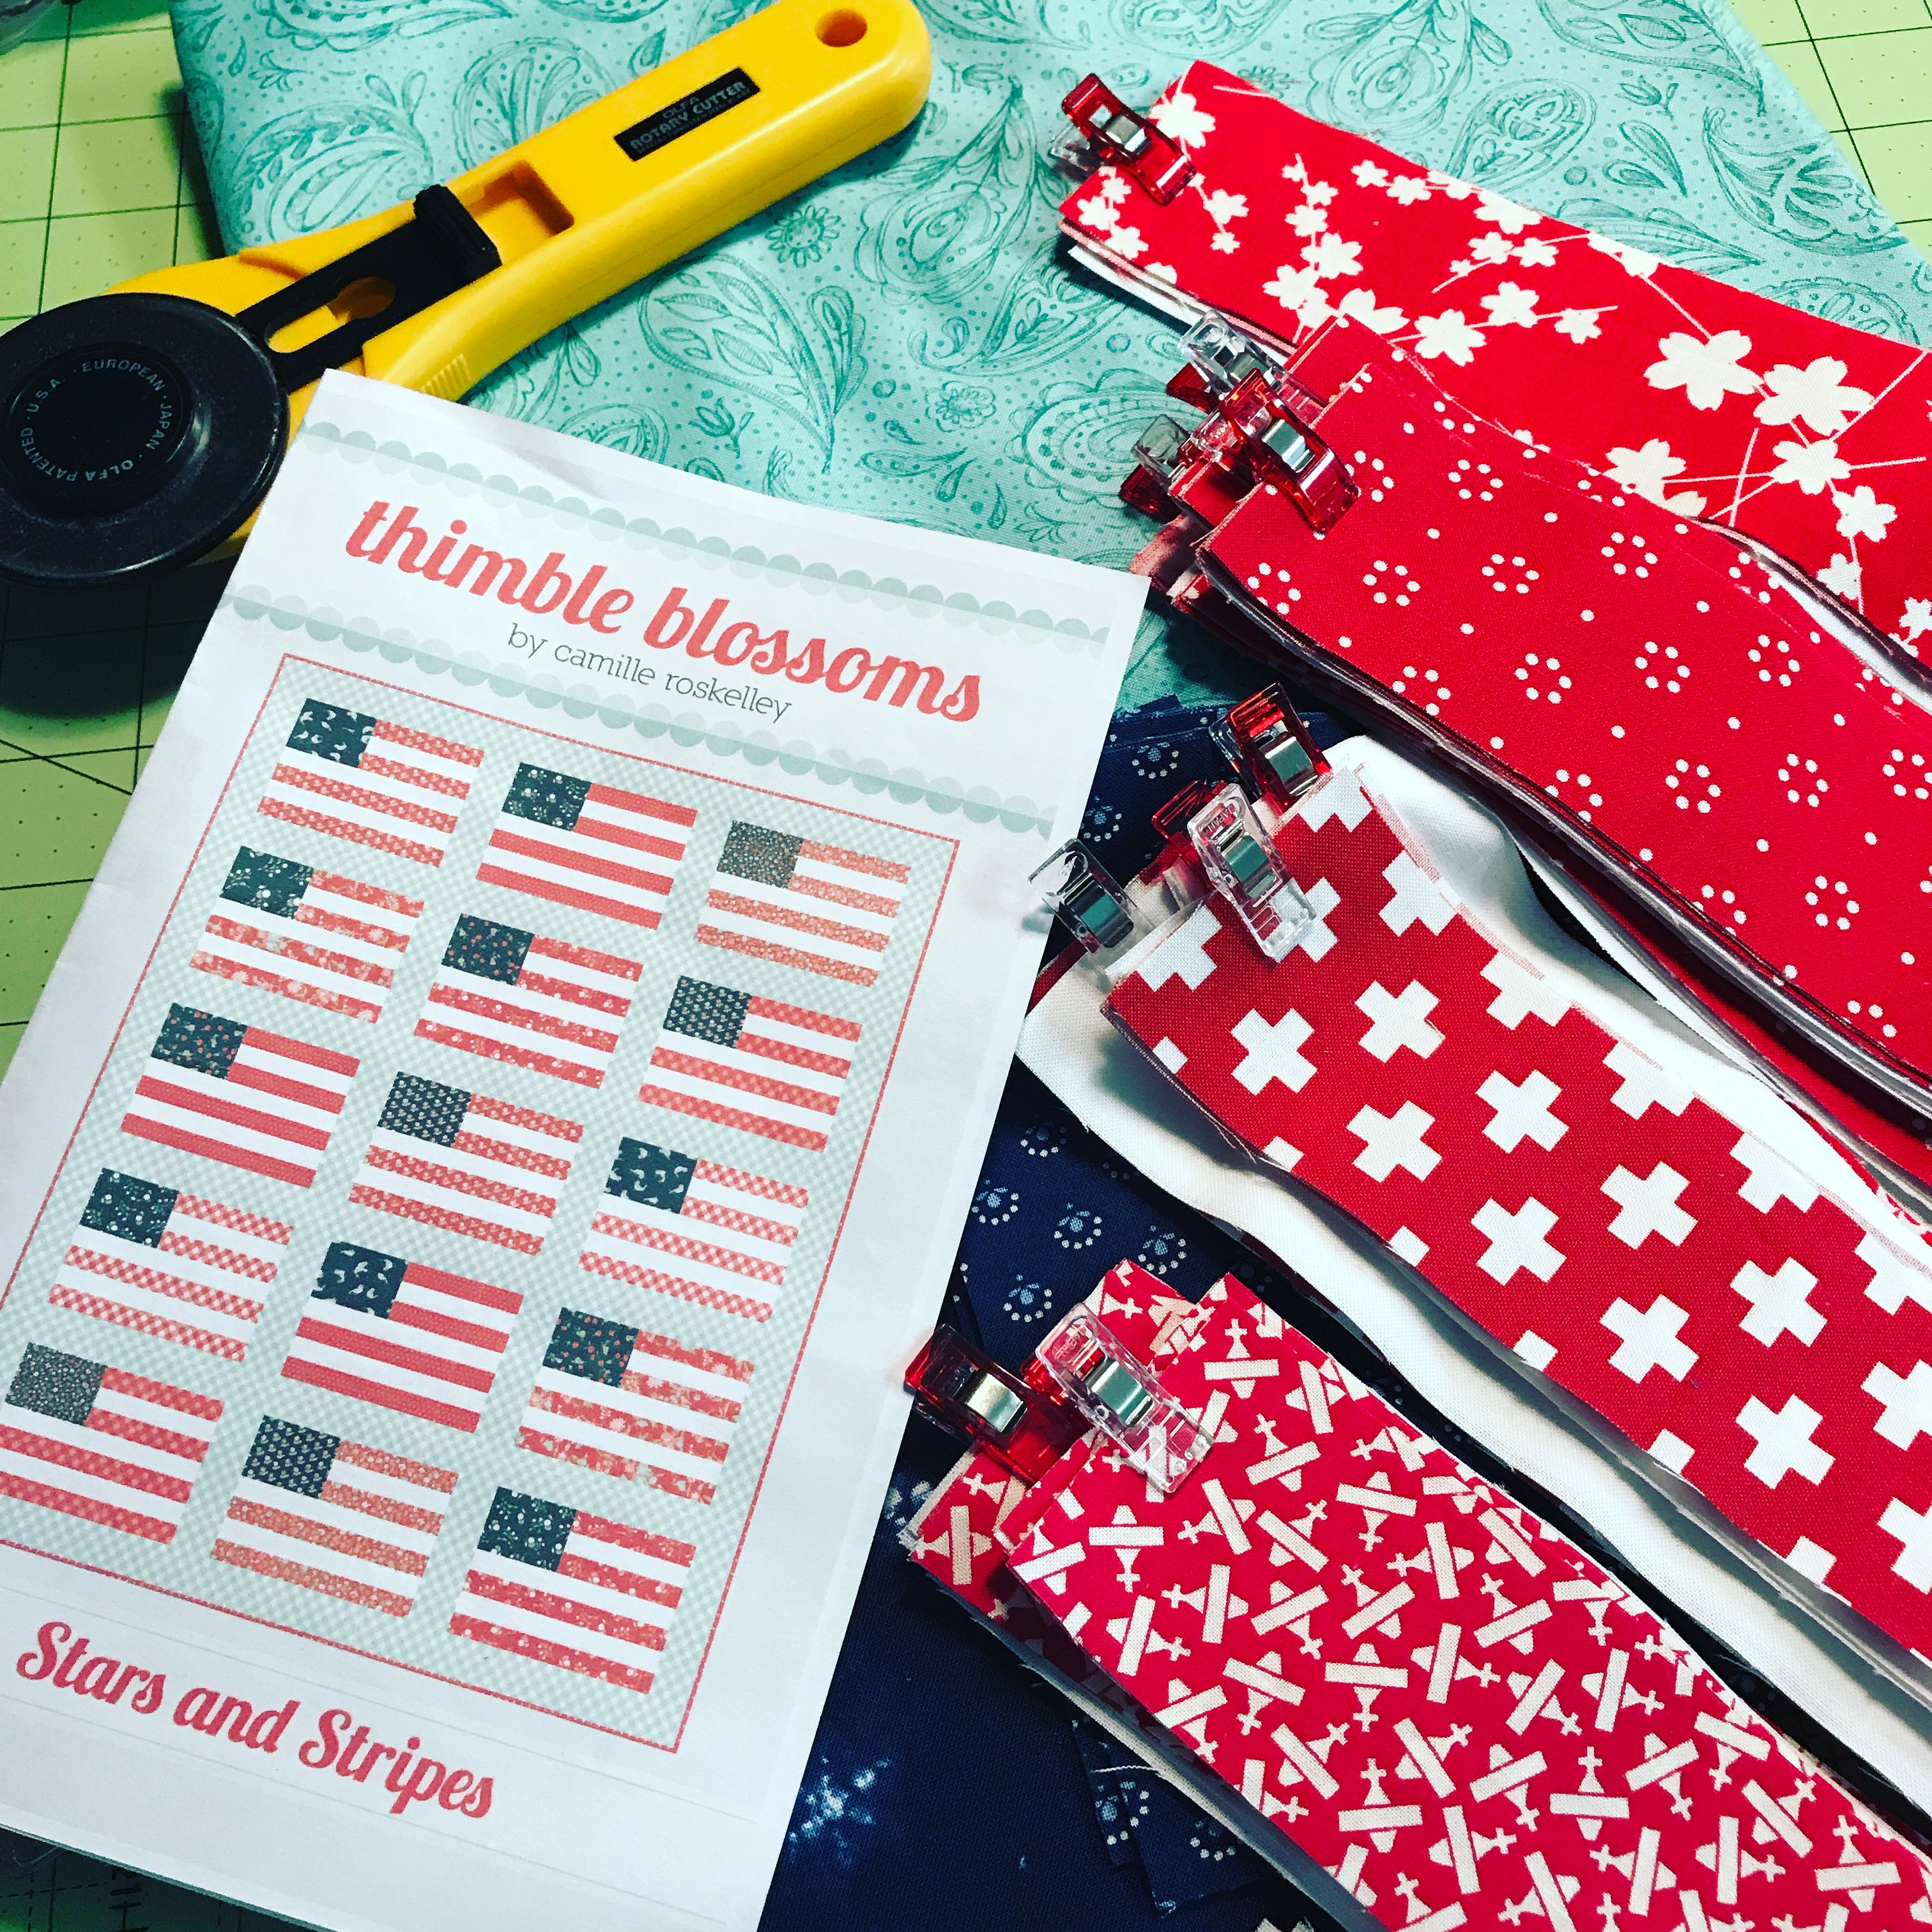 Stars and Stripes Quilt - choosing the fabric